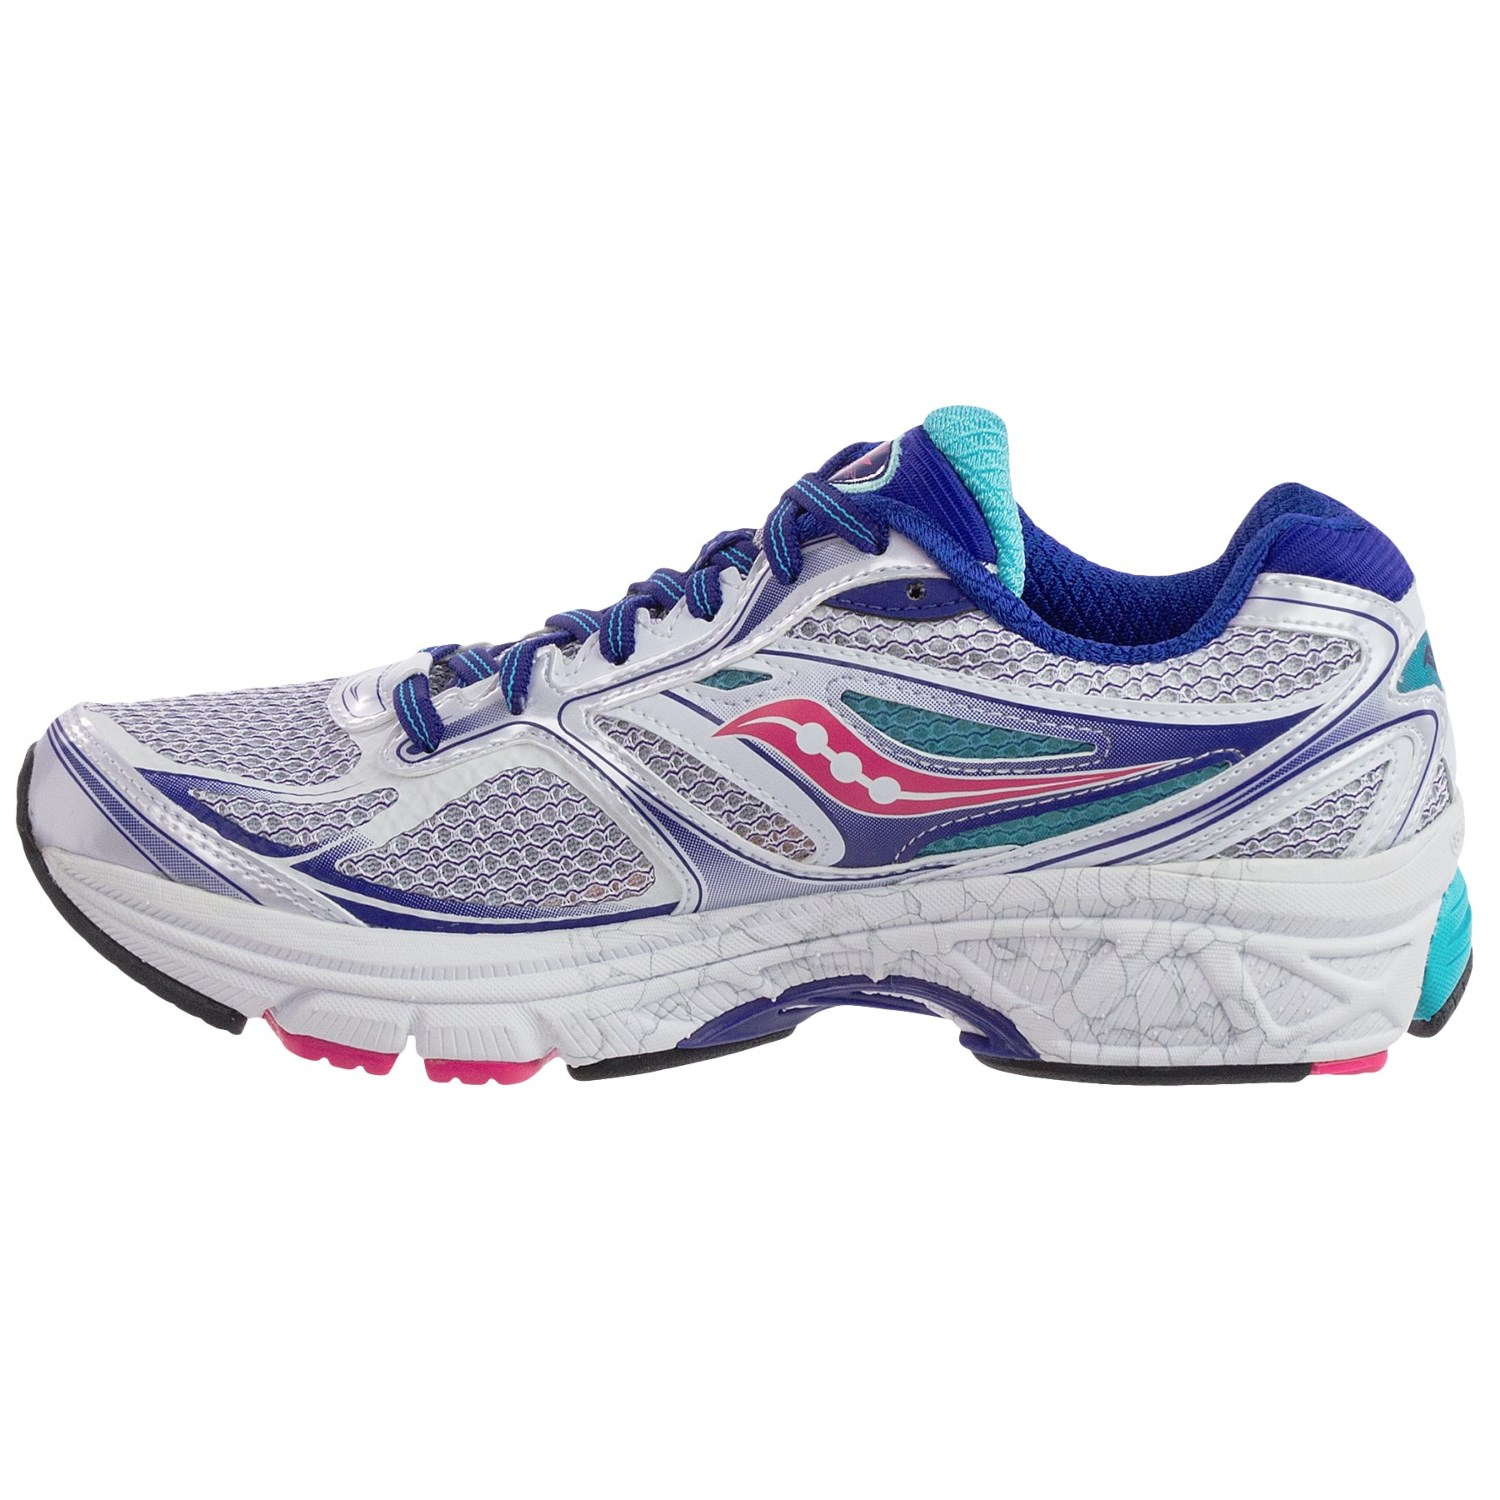 Best Running Shoes For City Saucony